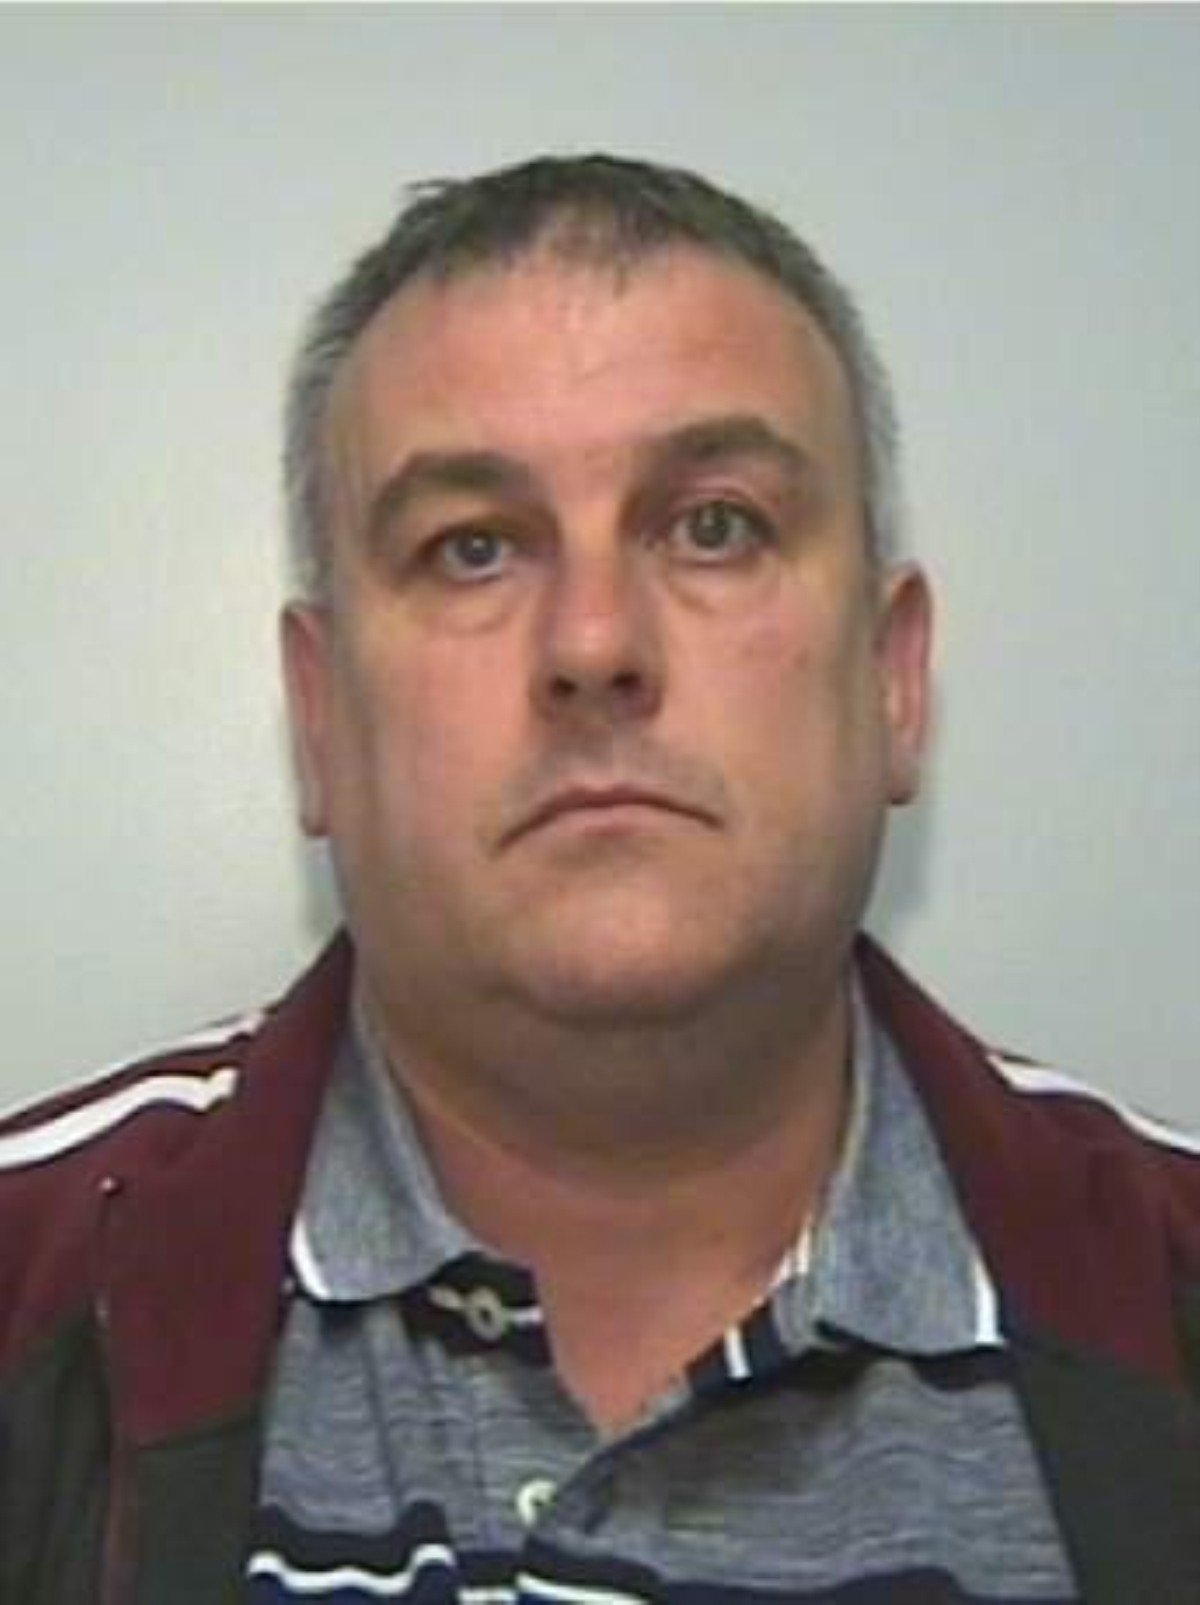 Simon Hayes conned his victims out of £150,050